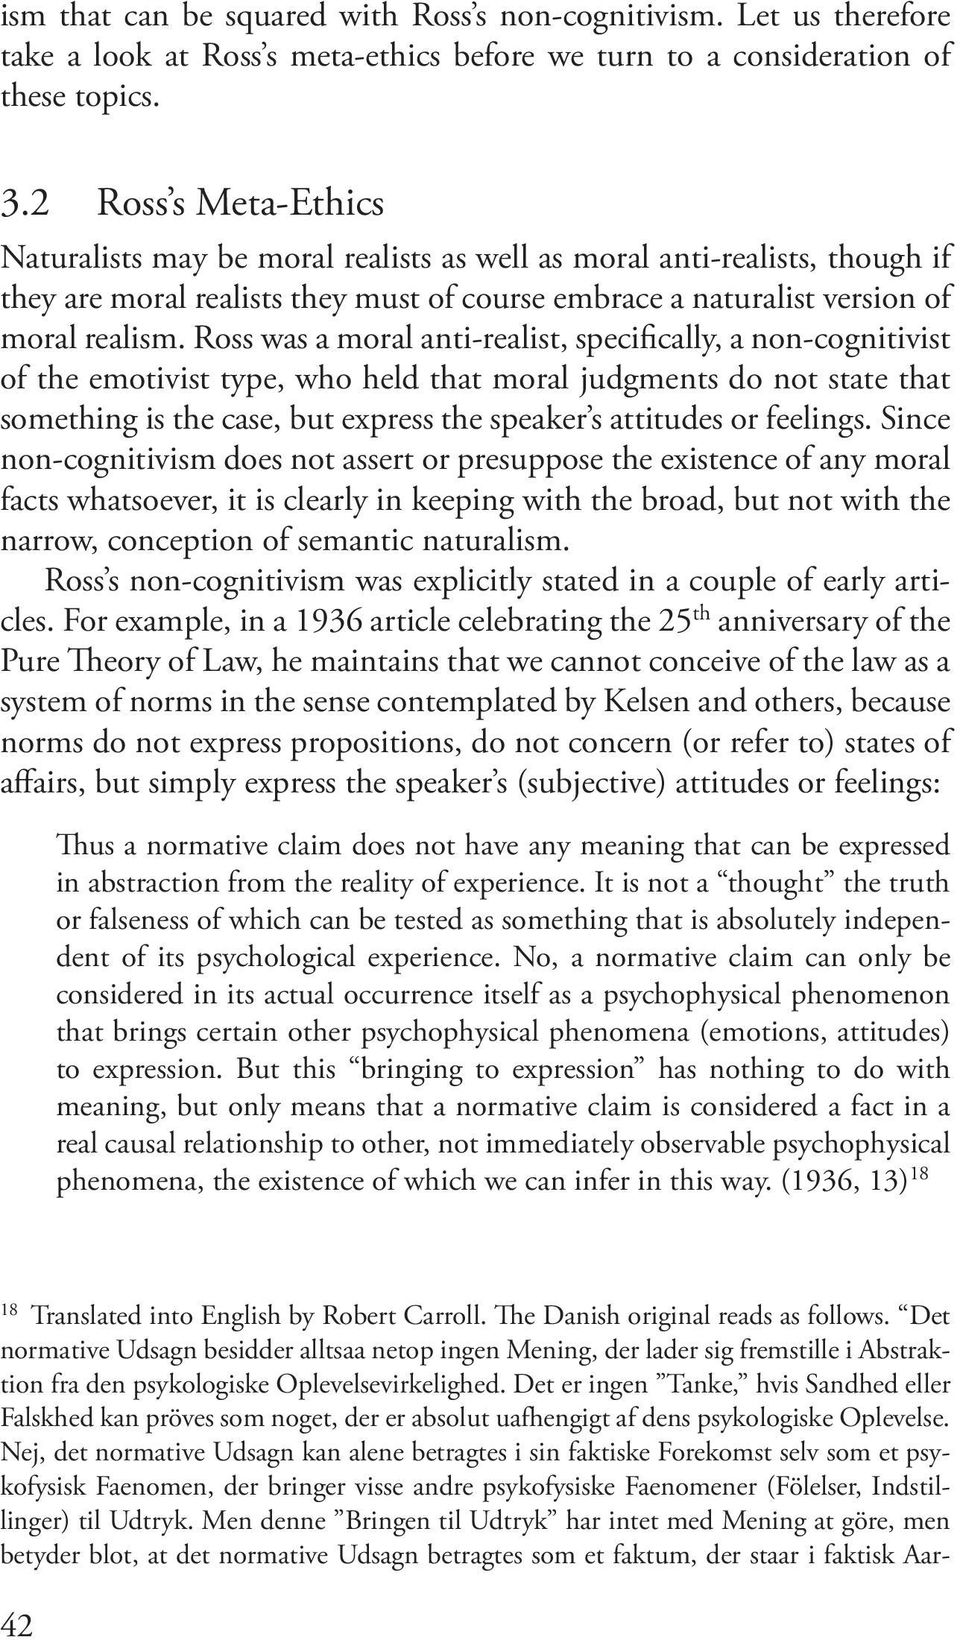 Ross was a moral anti-realist, specifically, a non-cognitivist of the emotivist type, who held that moral judgments do not state that something is the case, but express the speaker s attitudes or